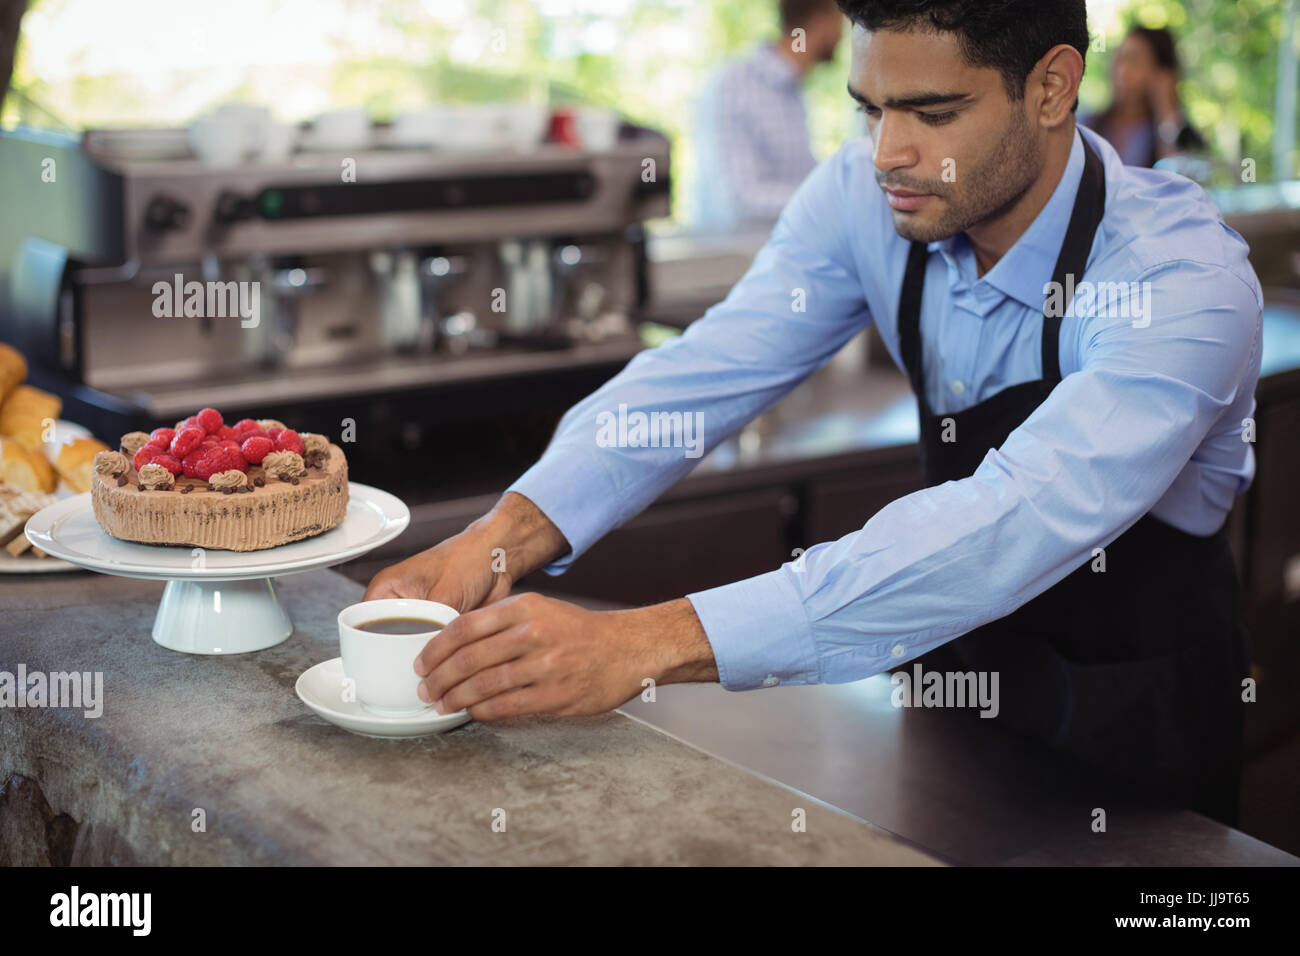 Waiter serving coffee at counter in commercial kitchen - Stock Image